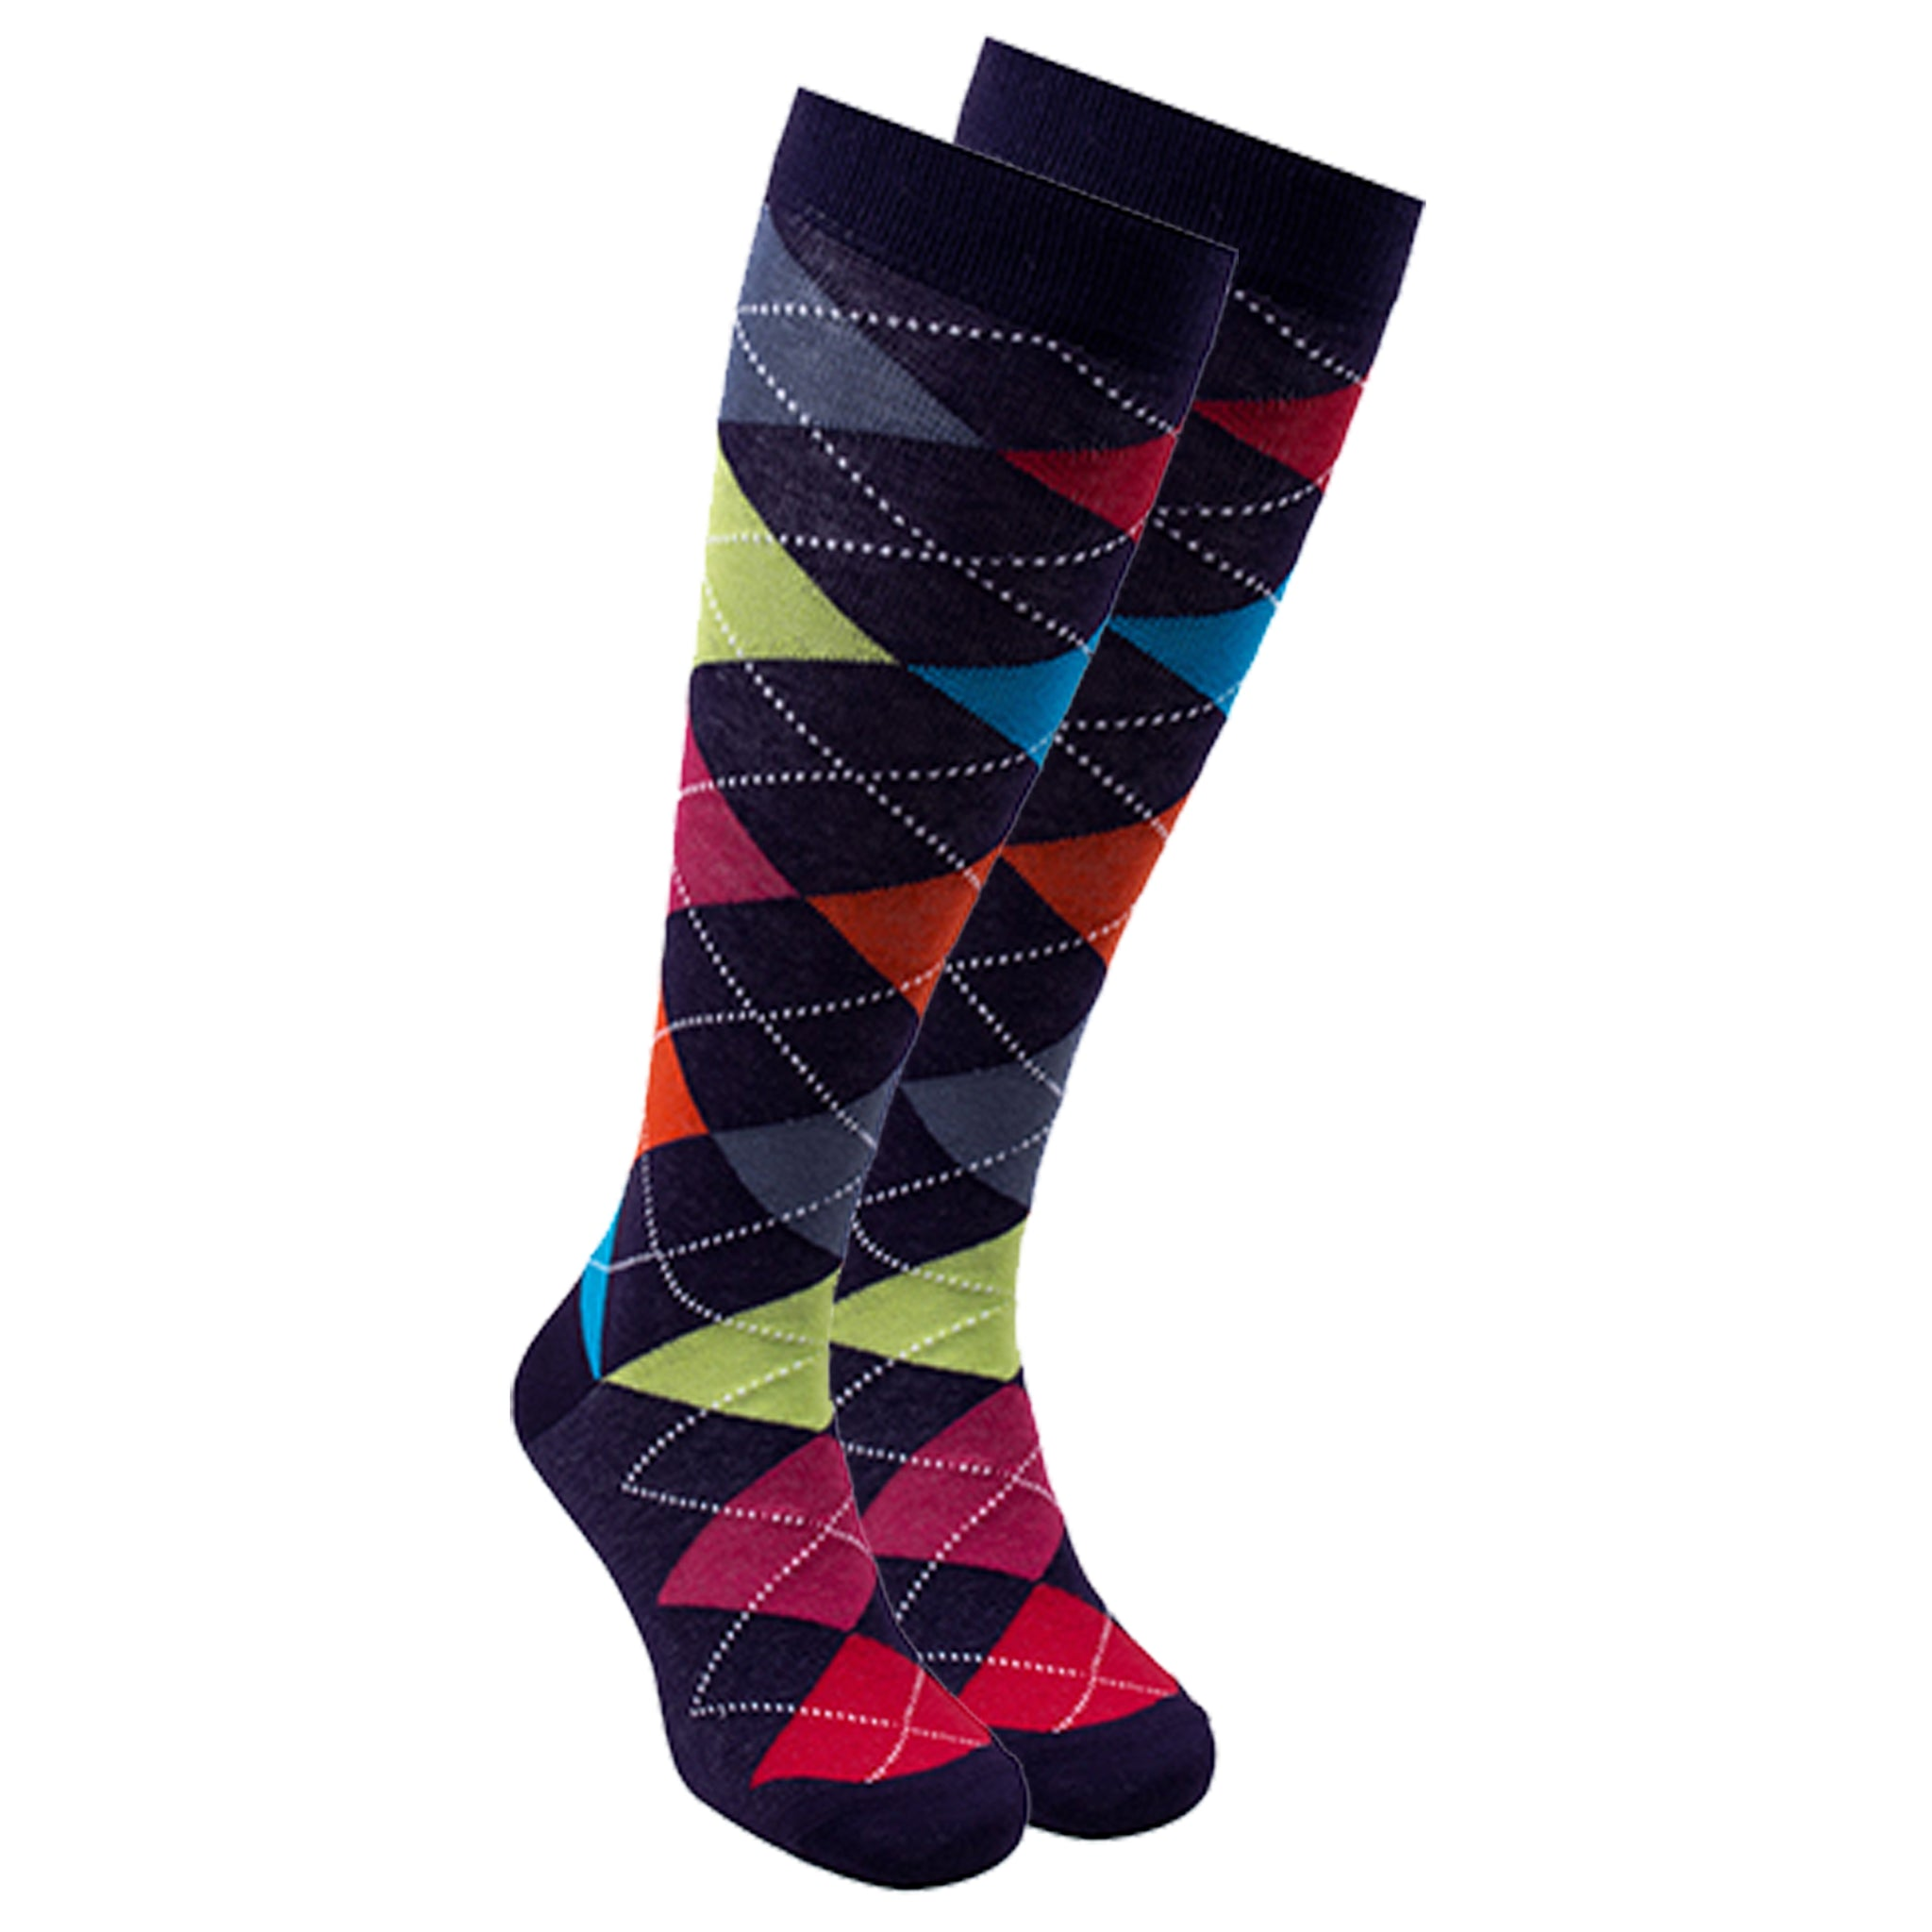 Women's Mixed Navy Argyle Knee High Socks